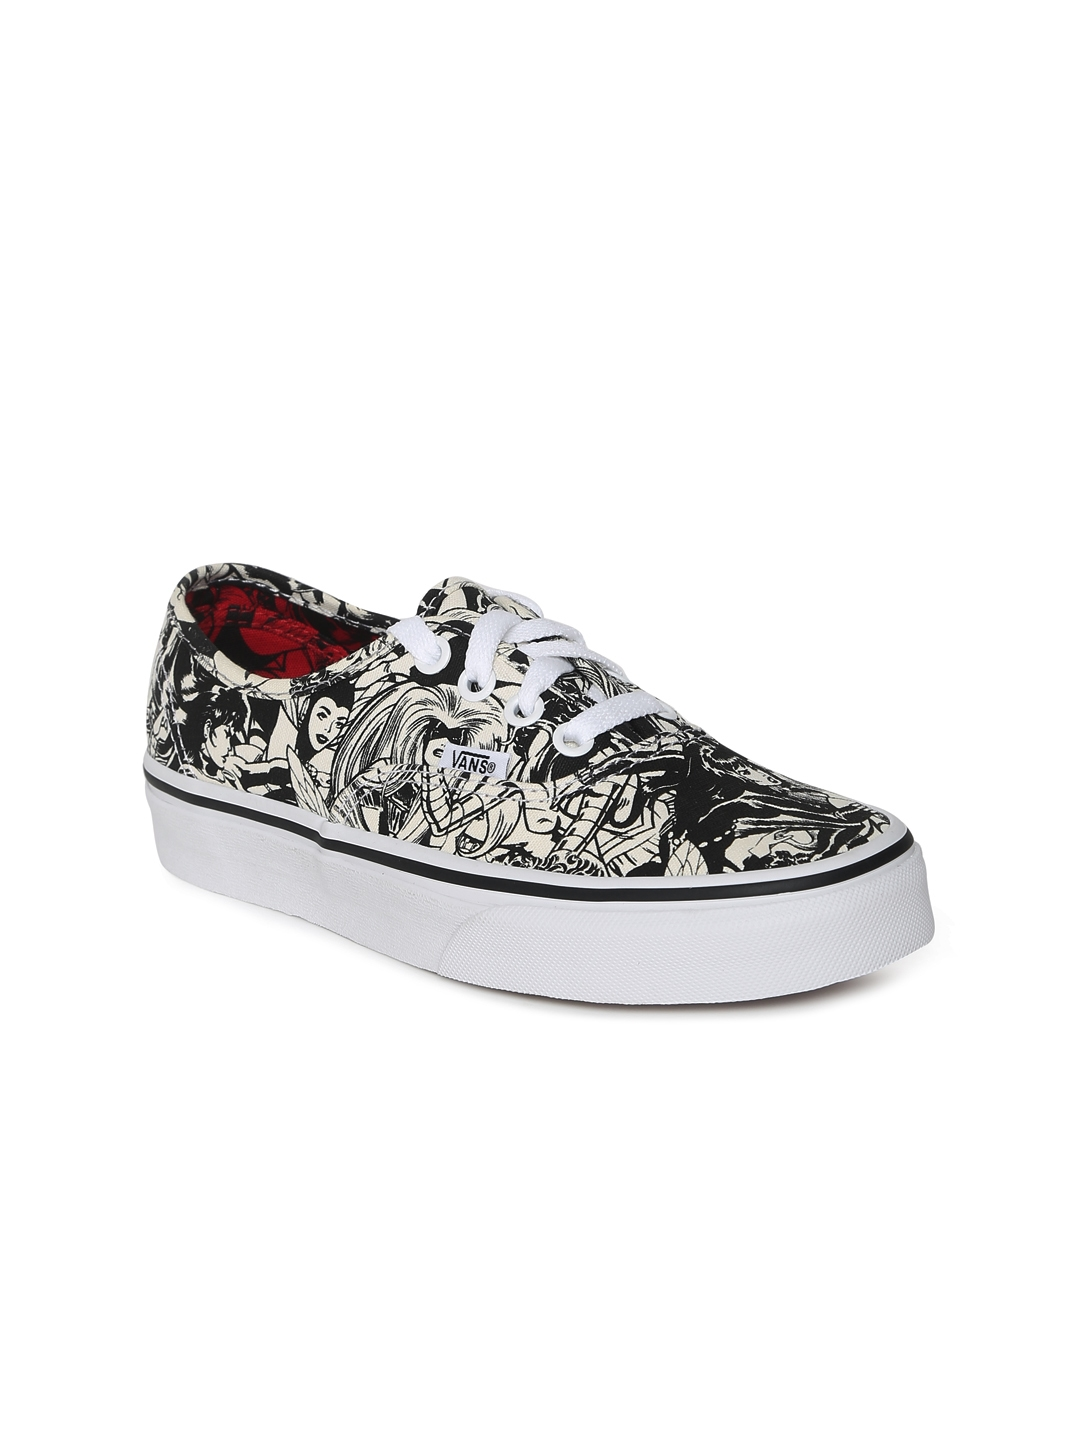 7654090c5a3 Buy Vans Women White   Black Authentic Sneakers - Casual Shoes for ...